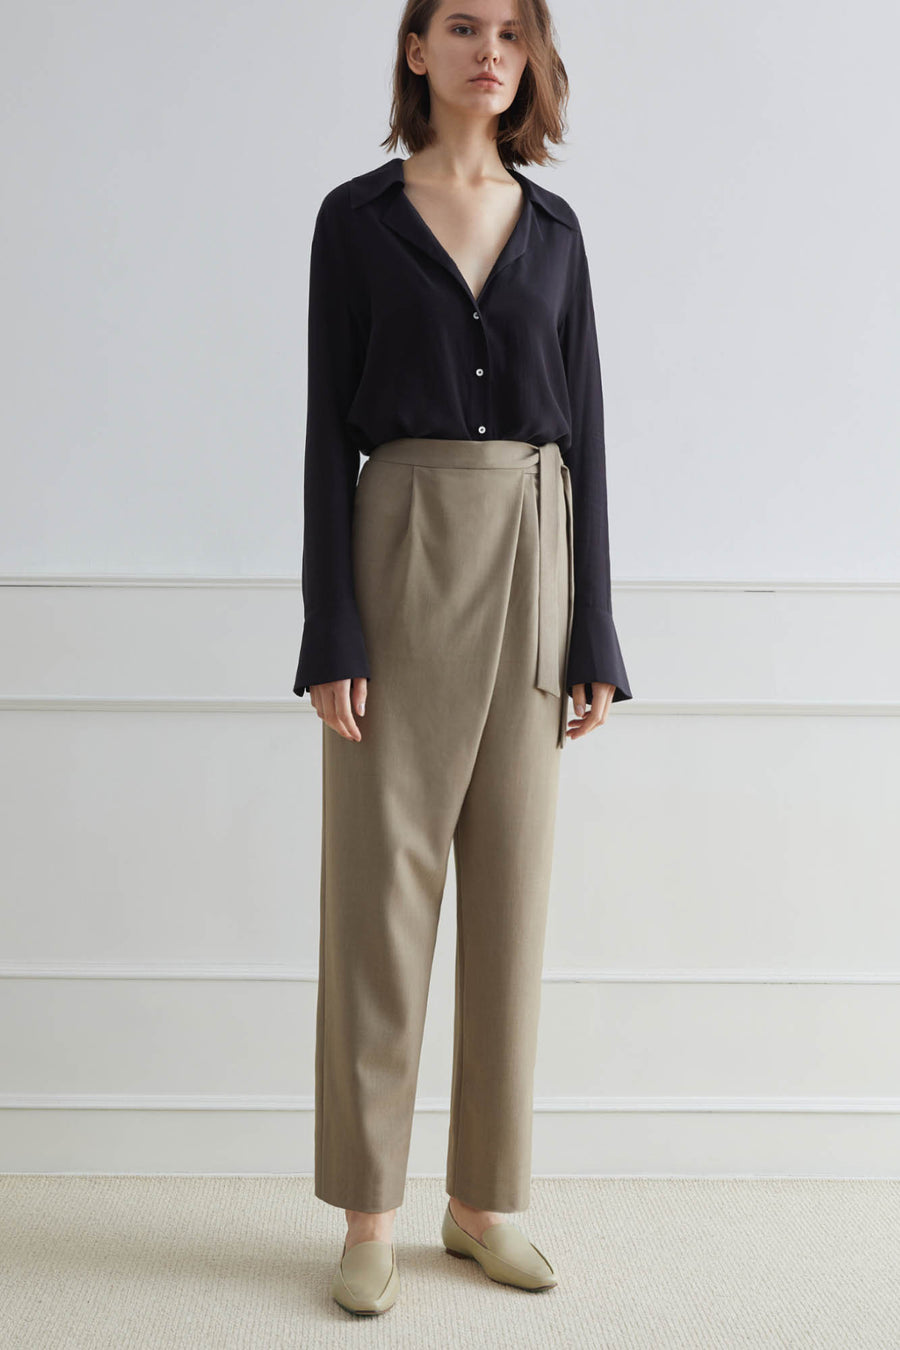 CASHEL Pants with Self-Tie Belt